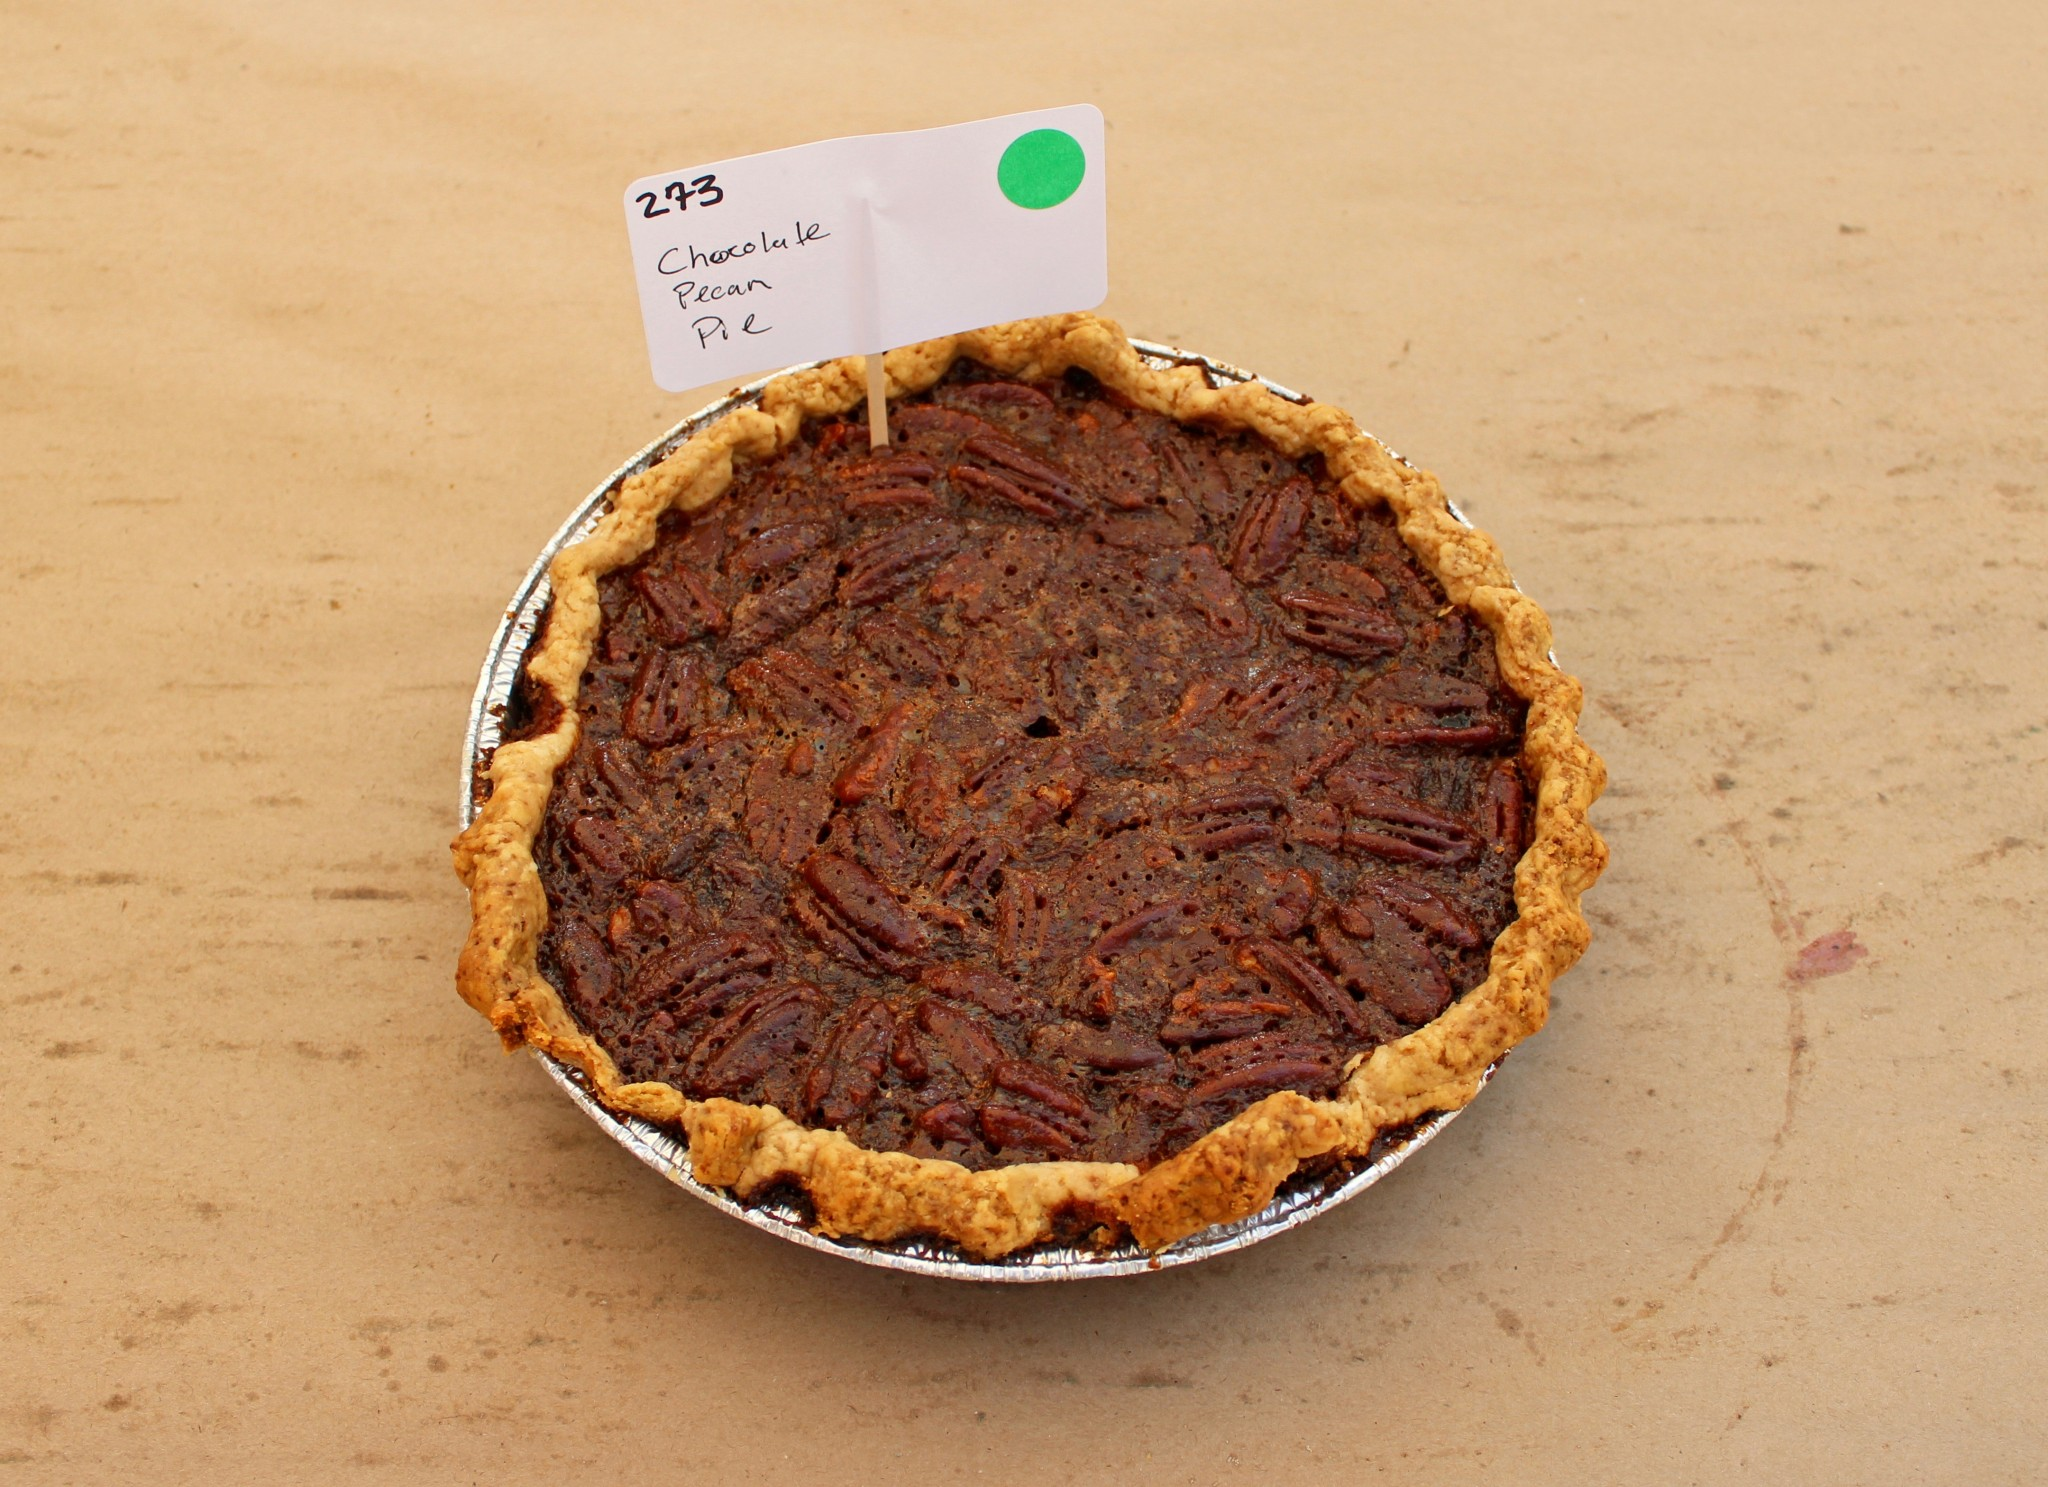 nut-1-273-chocolate-pecan-pie-by-mary-quirk-changed-from-mark